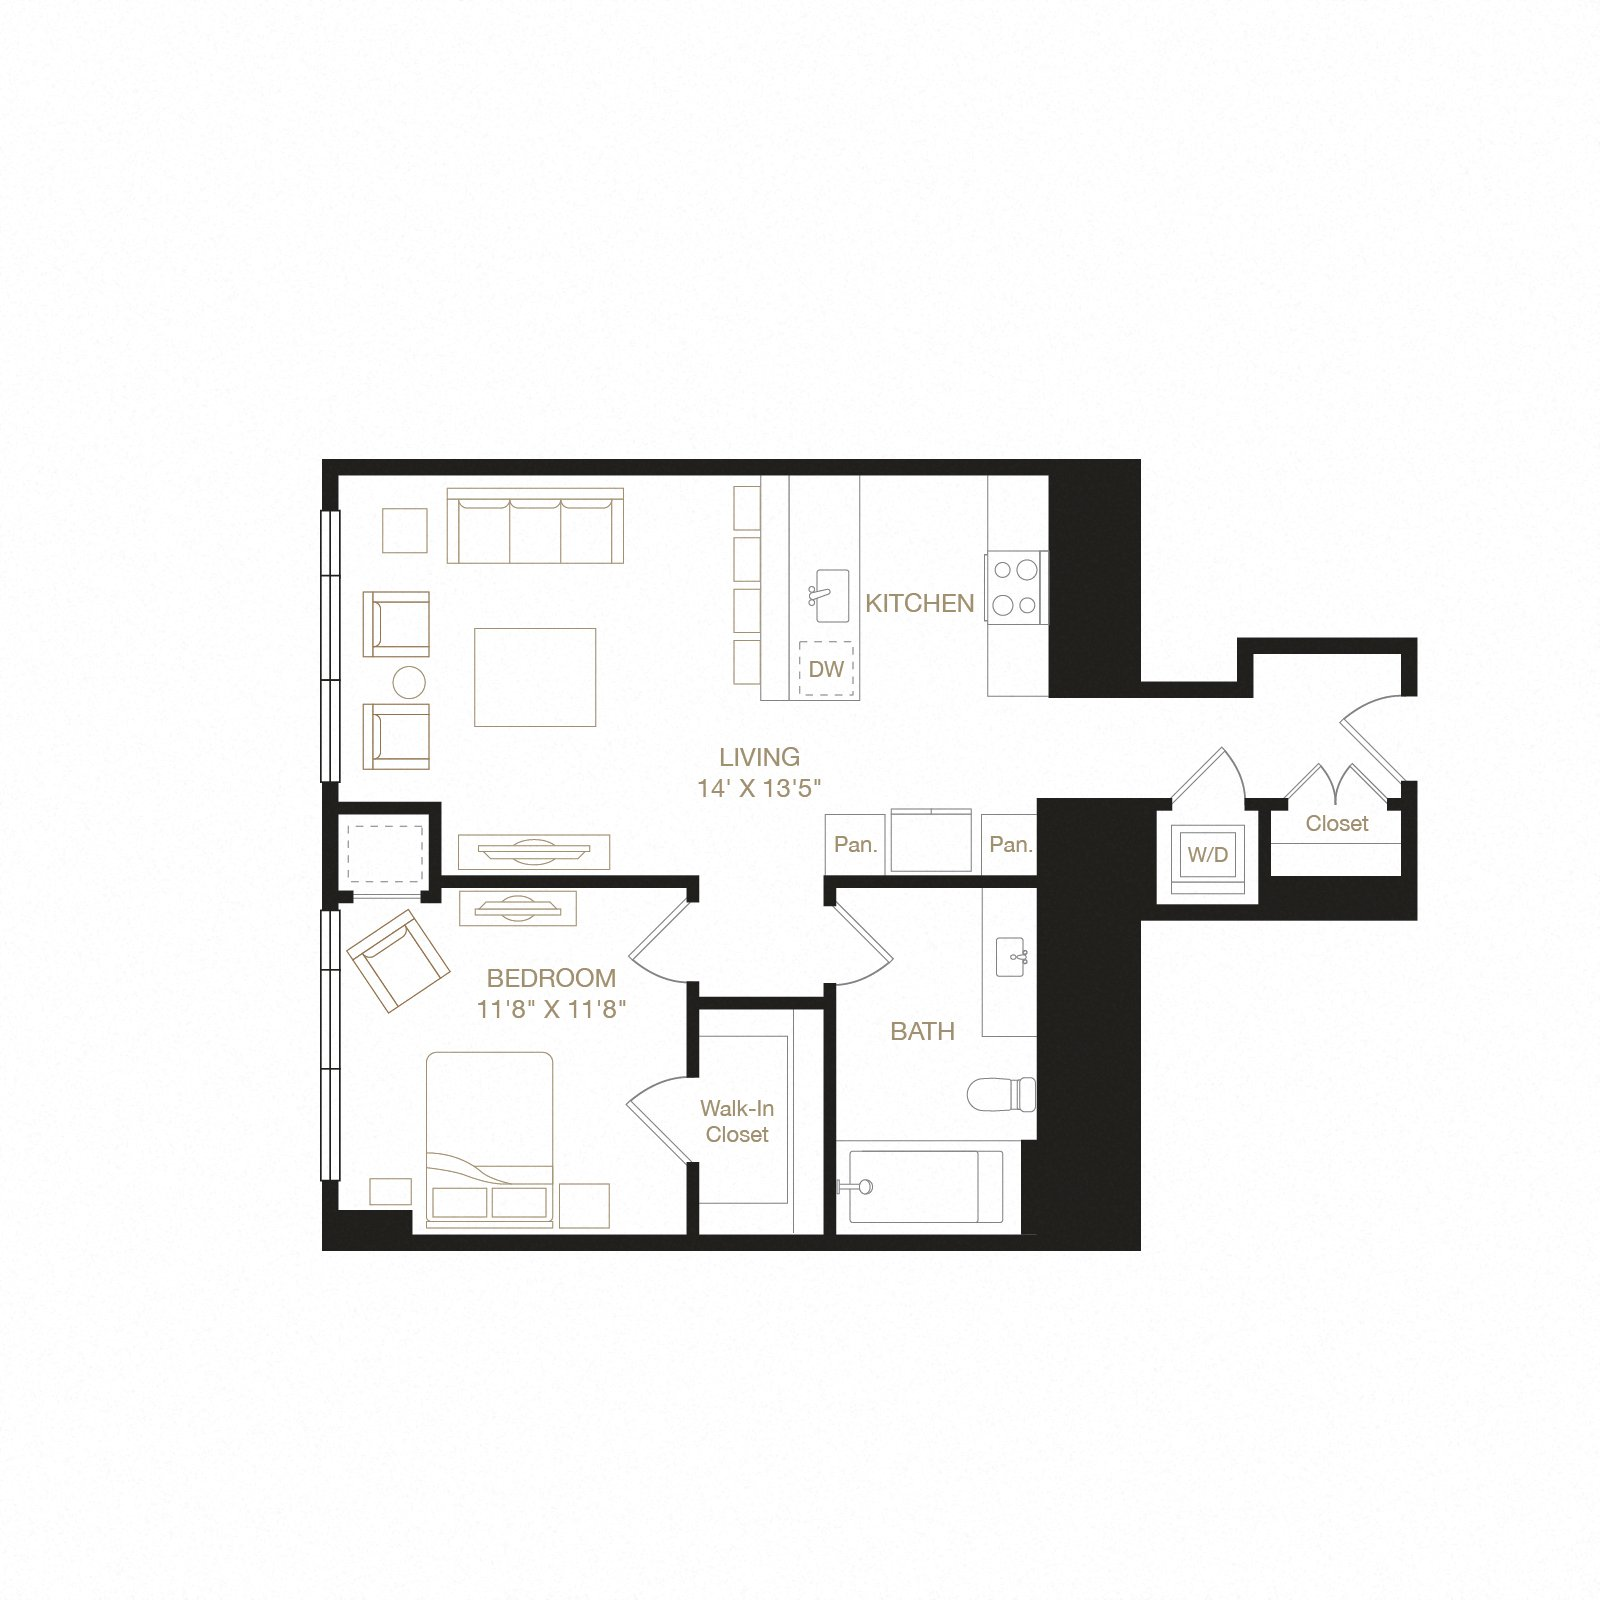 Channel floor plan diagram. One bedroom, one bathroom, a kitchen and living  area, and a washer dryer.